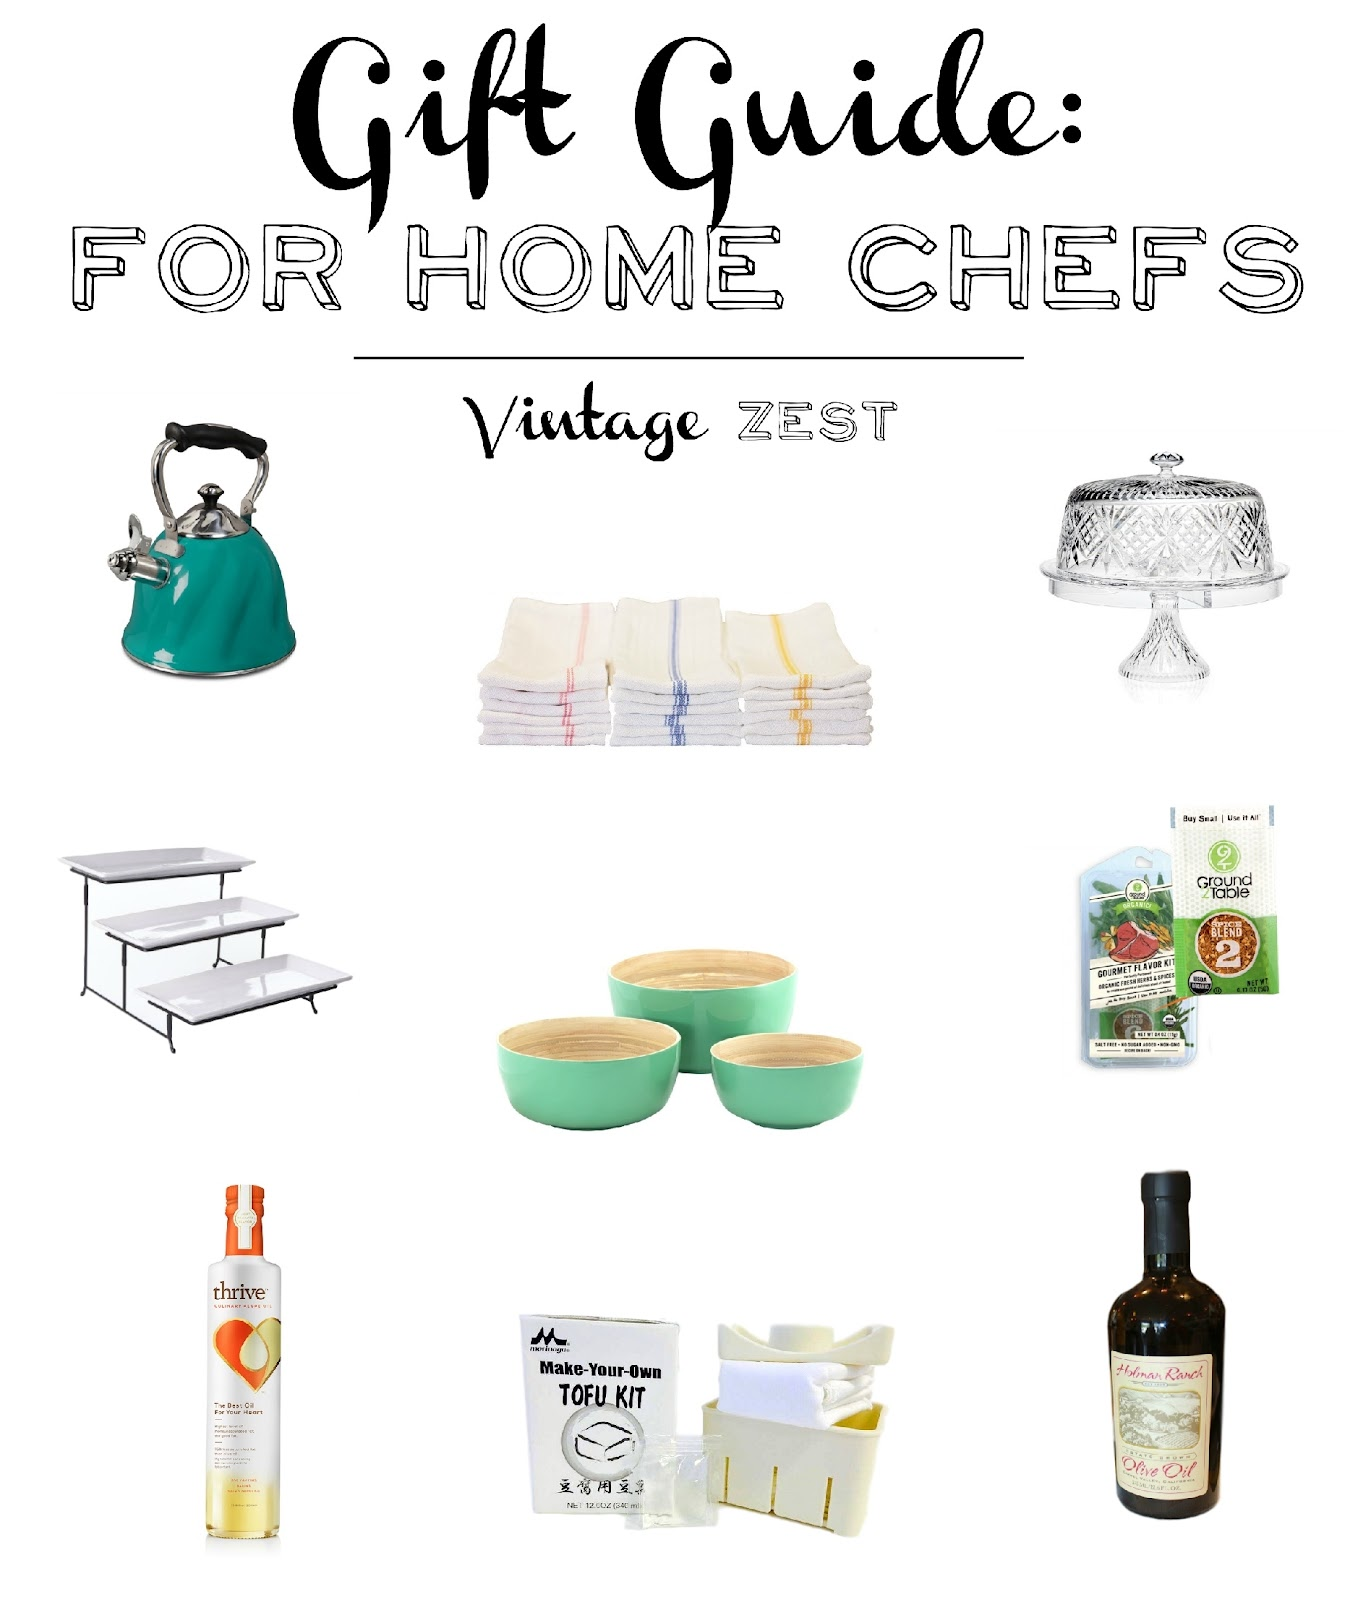 Gift Guide for Home Chefs on Diane's Vintage Zest!  #shopsmall #giftguide